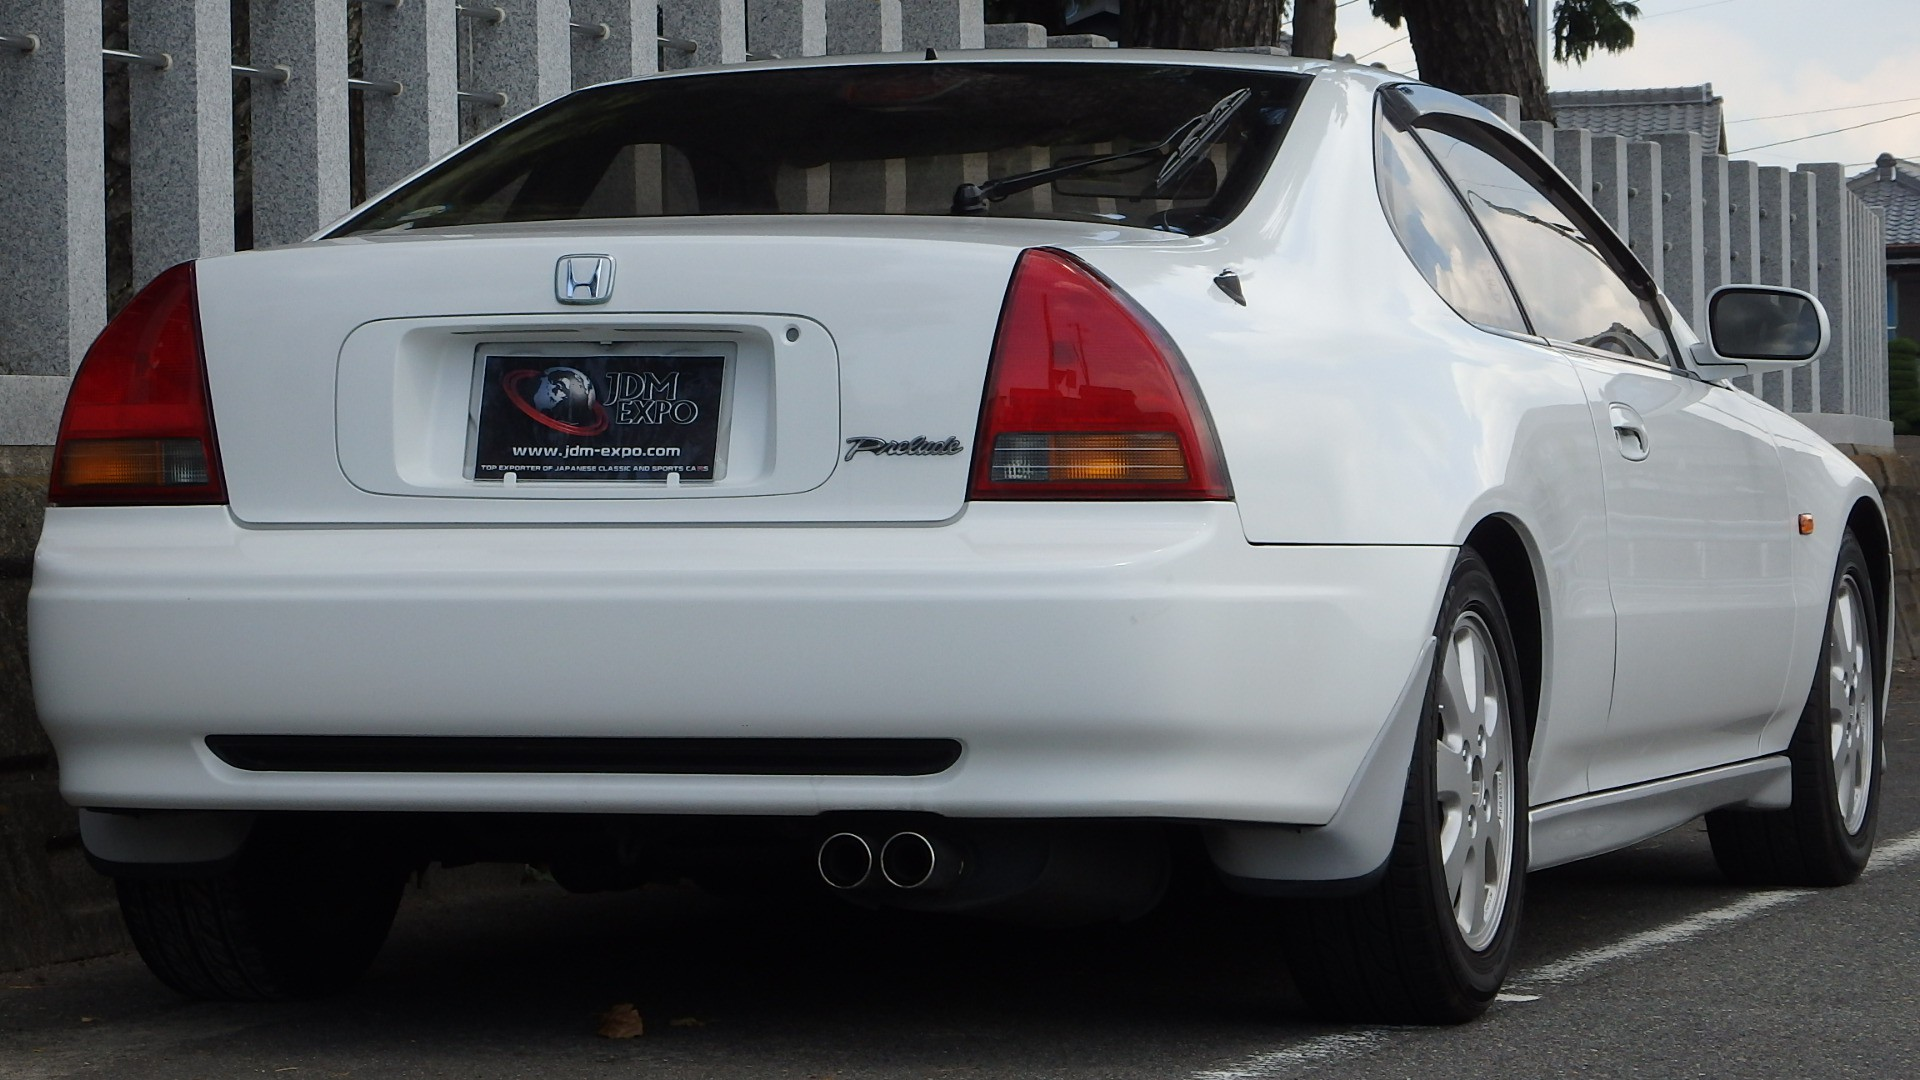 Wrx For Sale >> Honda Prelude for sale at JDM EXPO